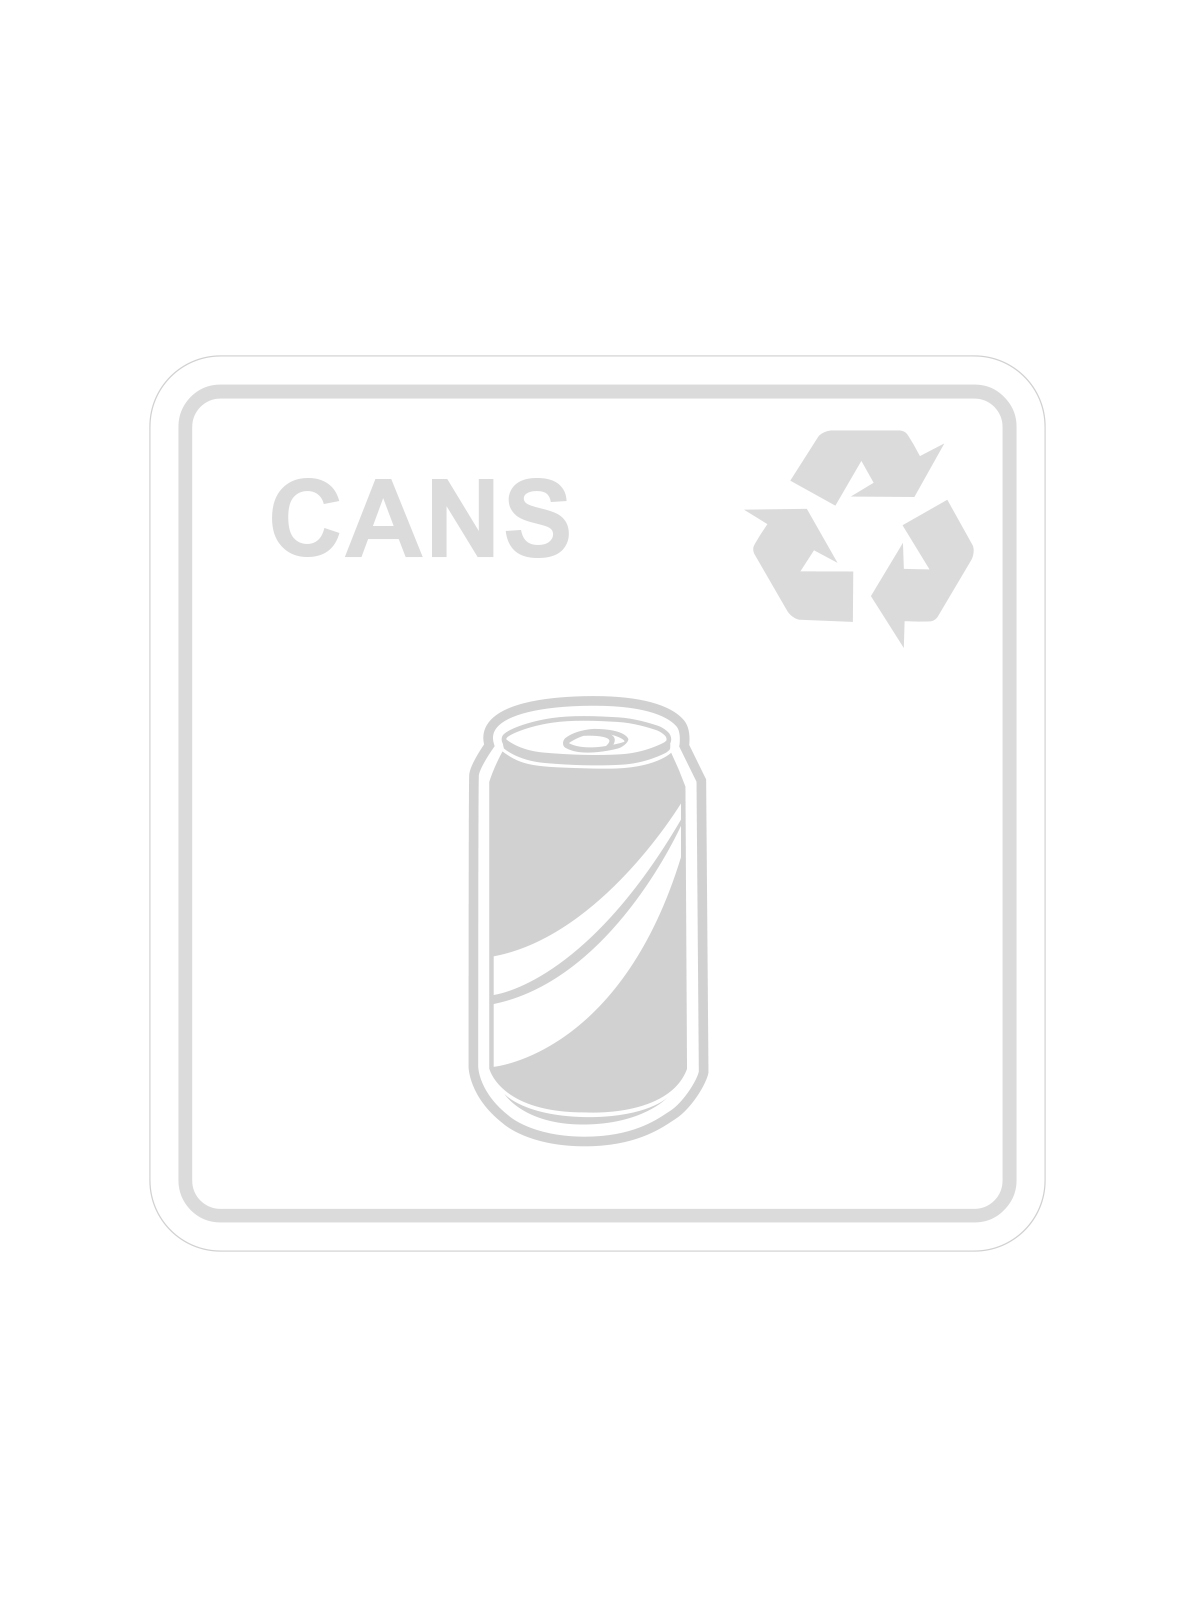 SQUARE LABEL CANS ONLY